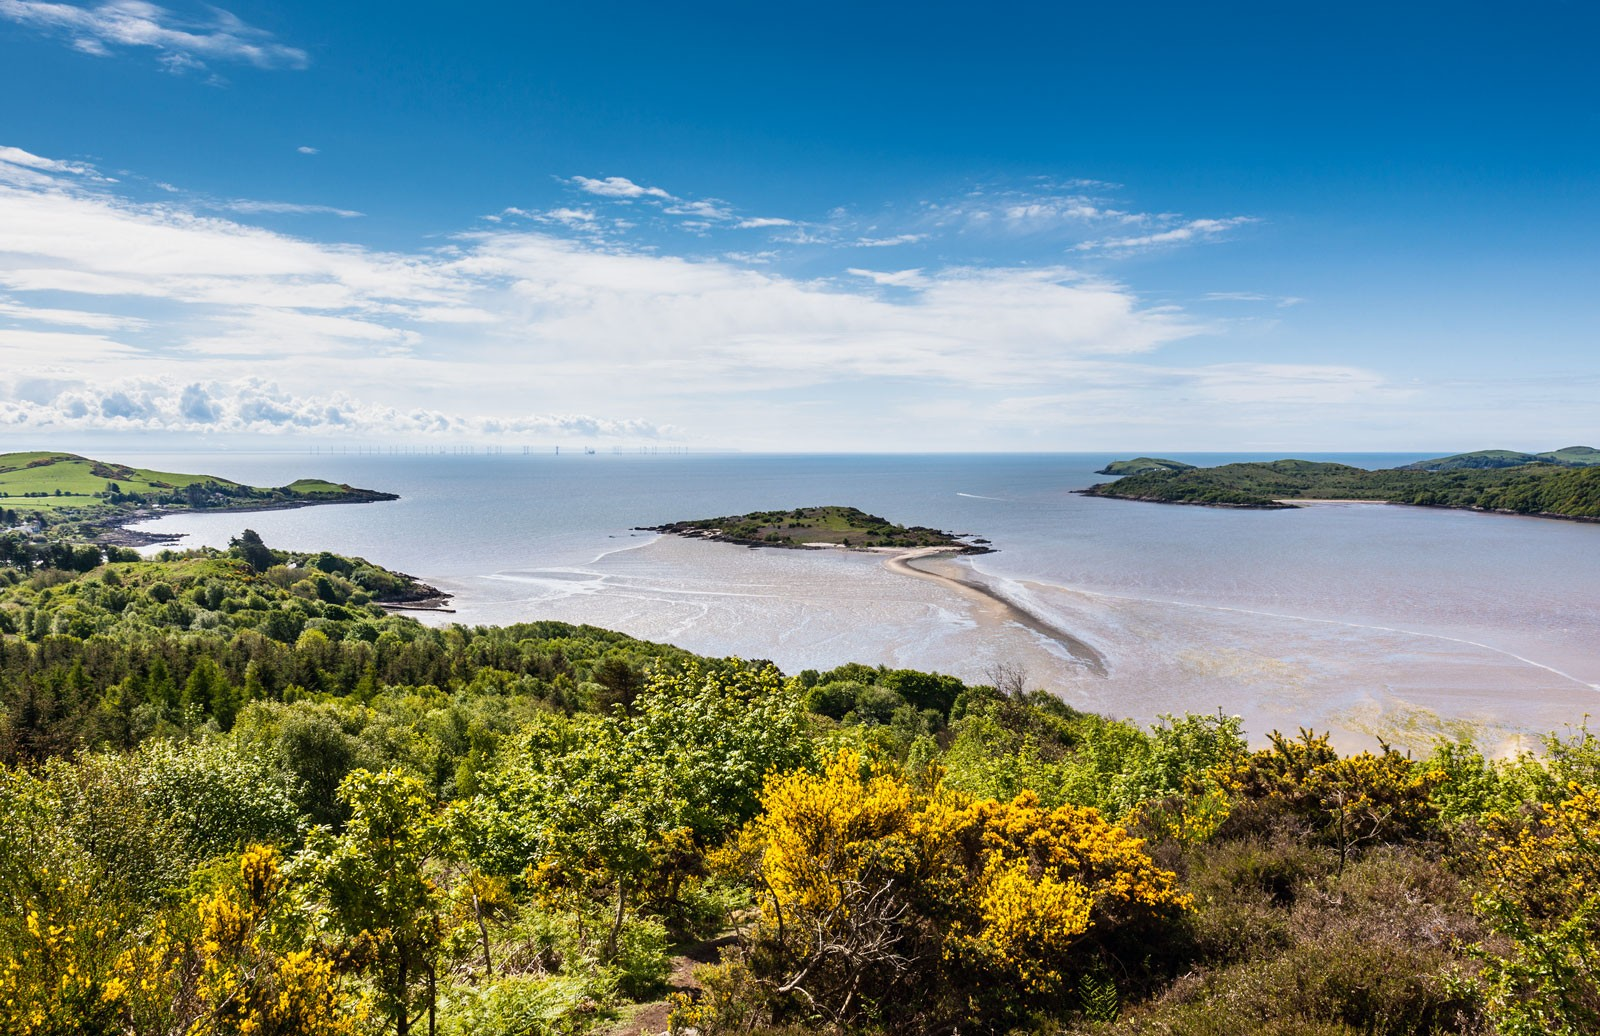 From The Muckle overlooking Rough Island and Rough Firth